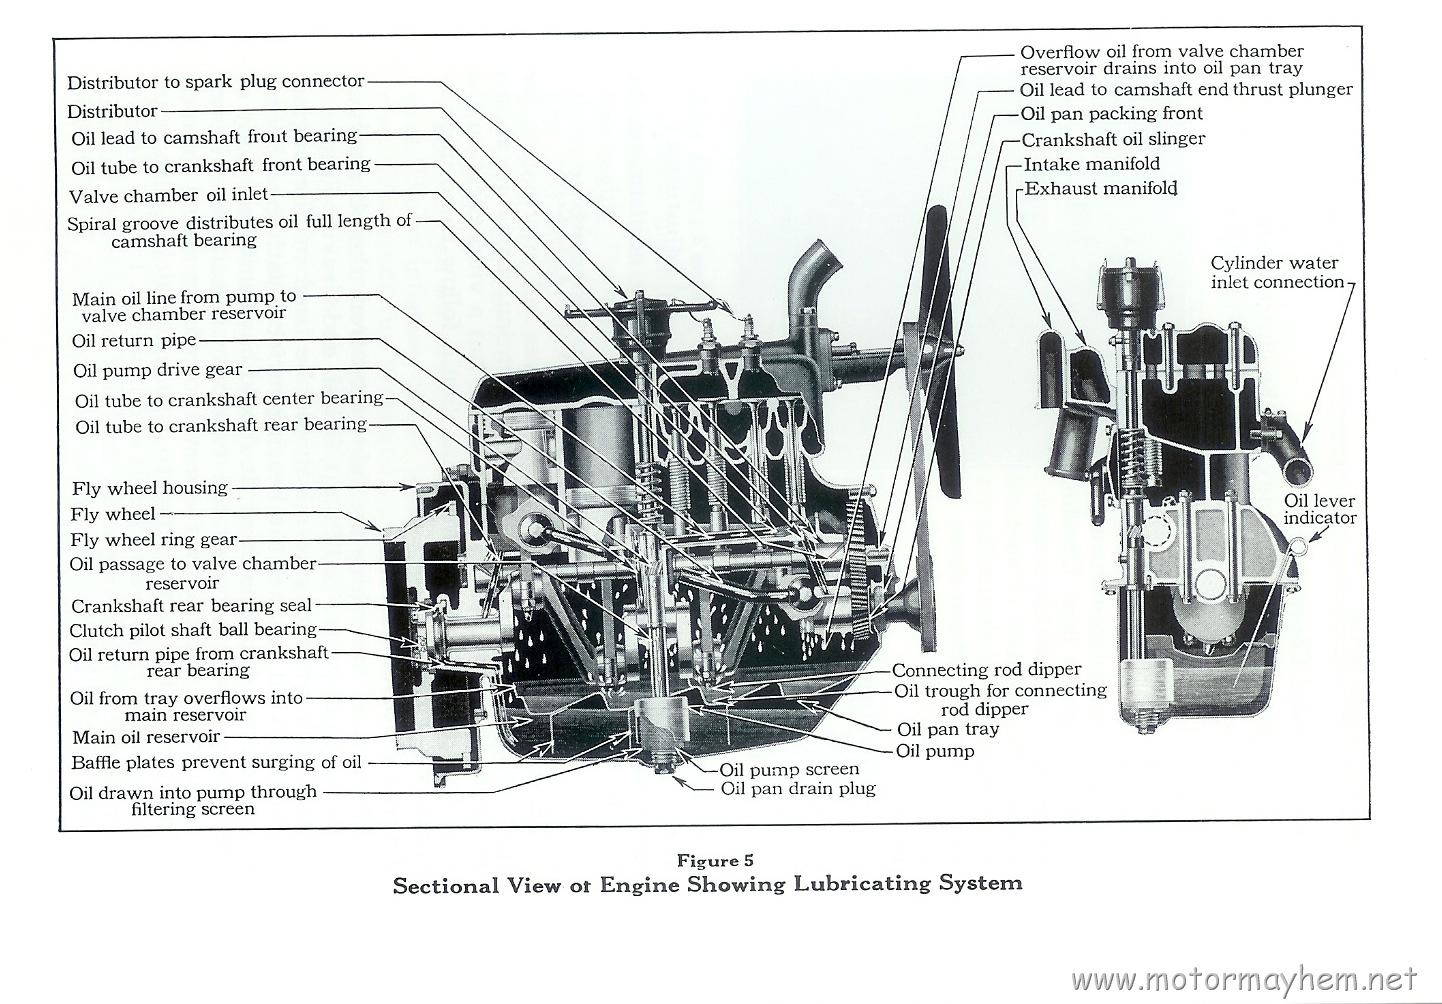 » Ford Model A Engine Specifications » Motor Mayhem